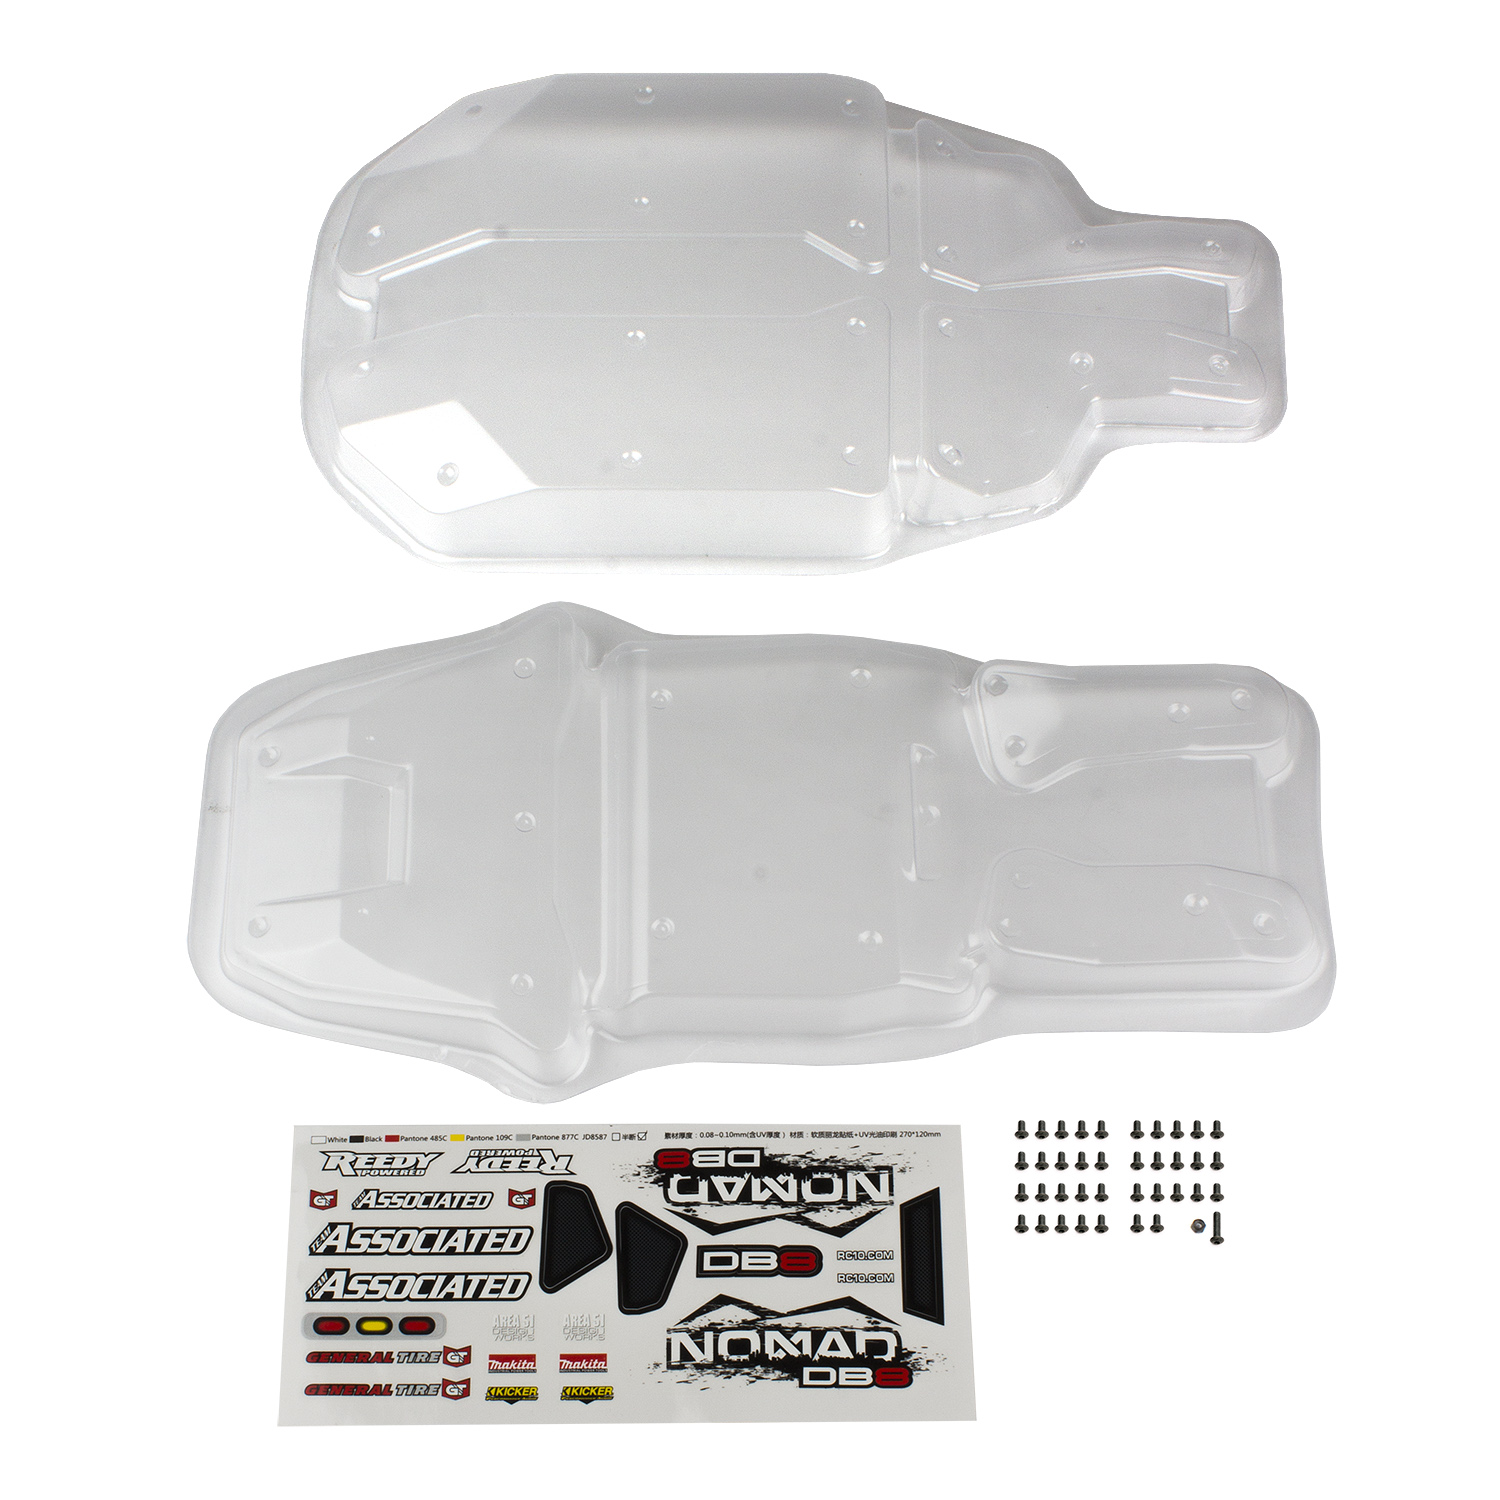 89605 Nomad Body, clear